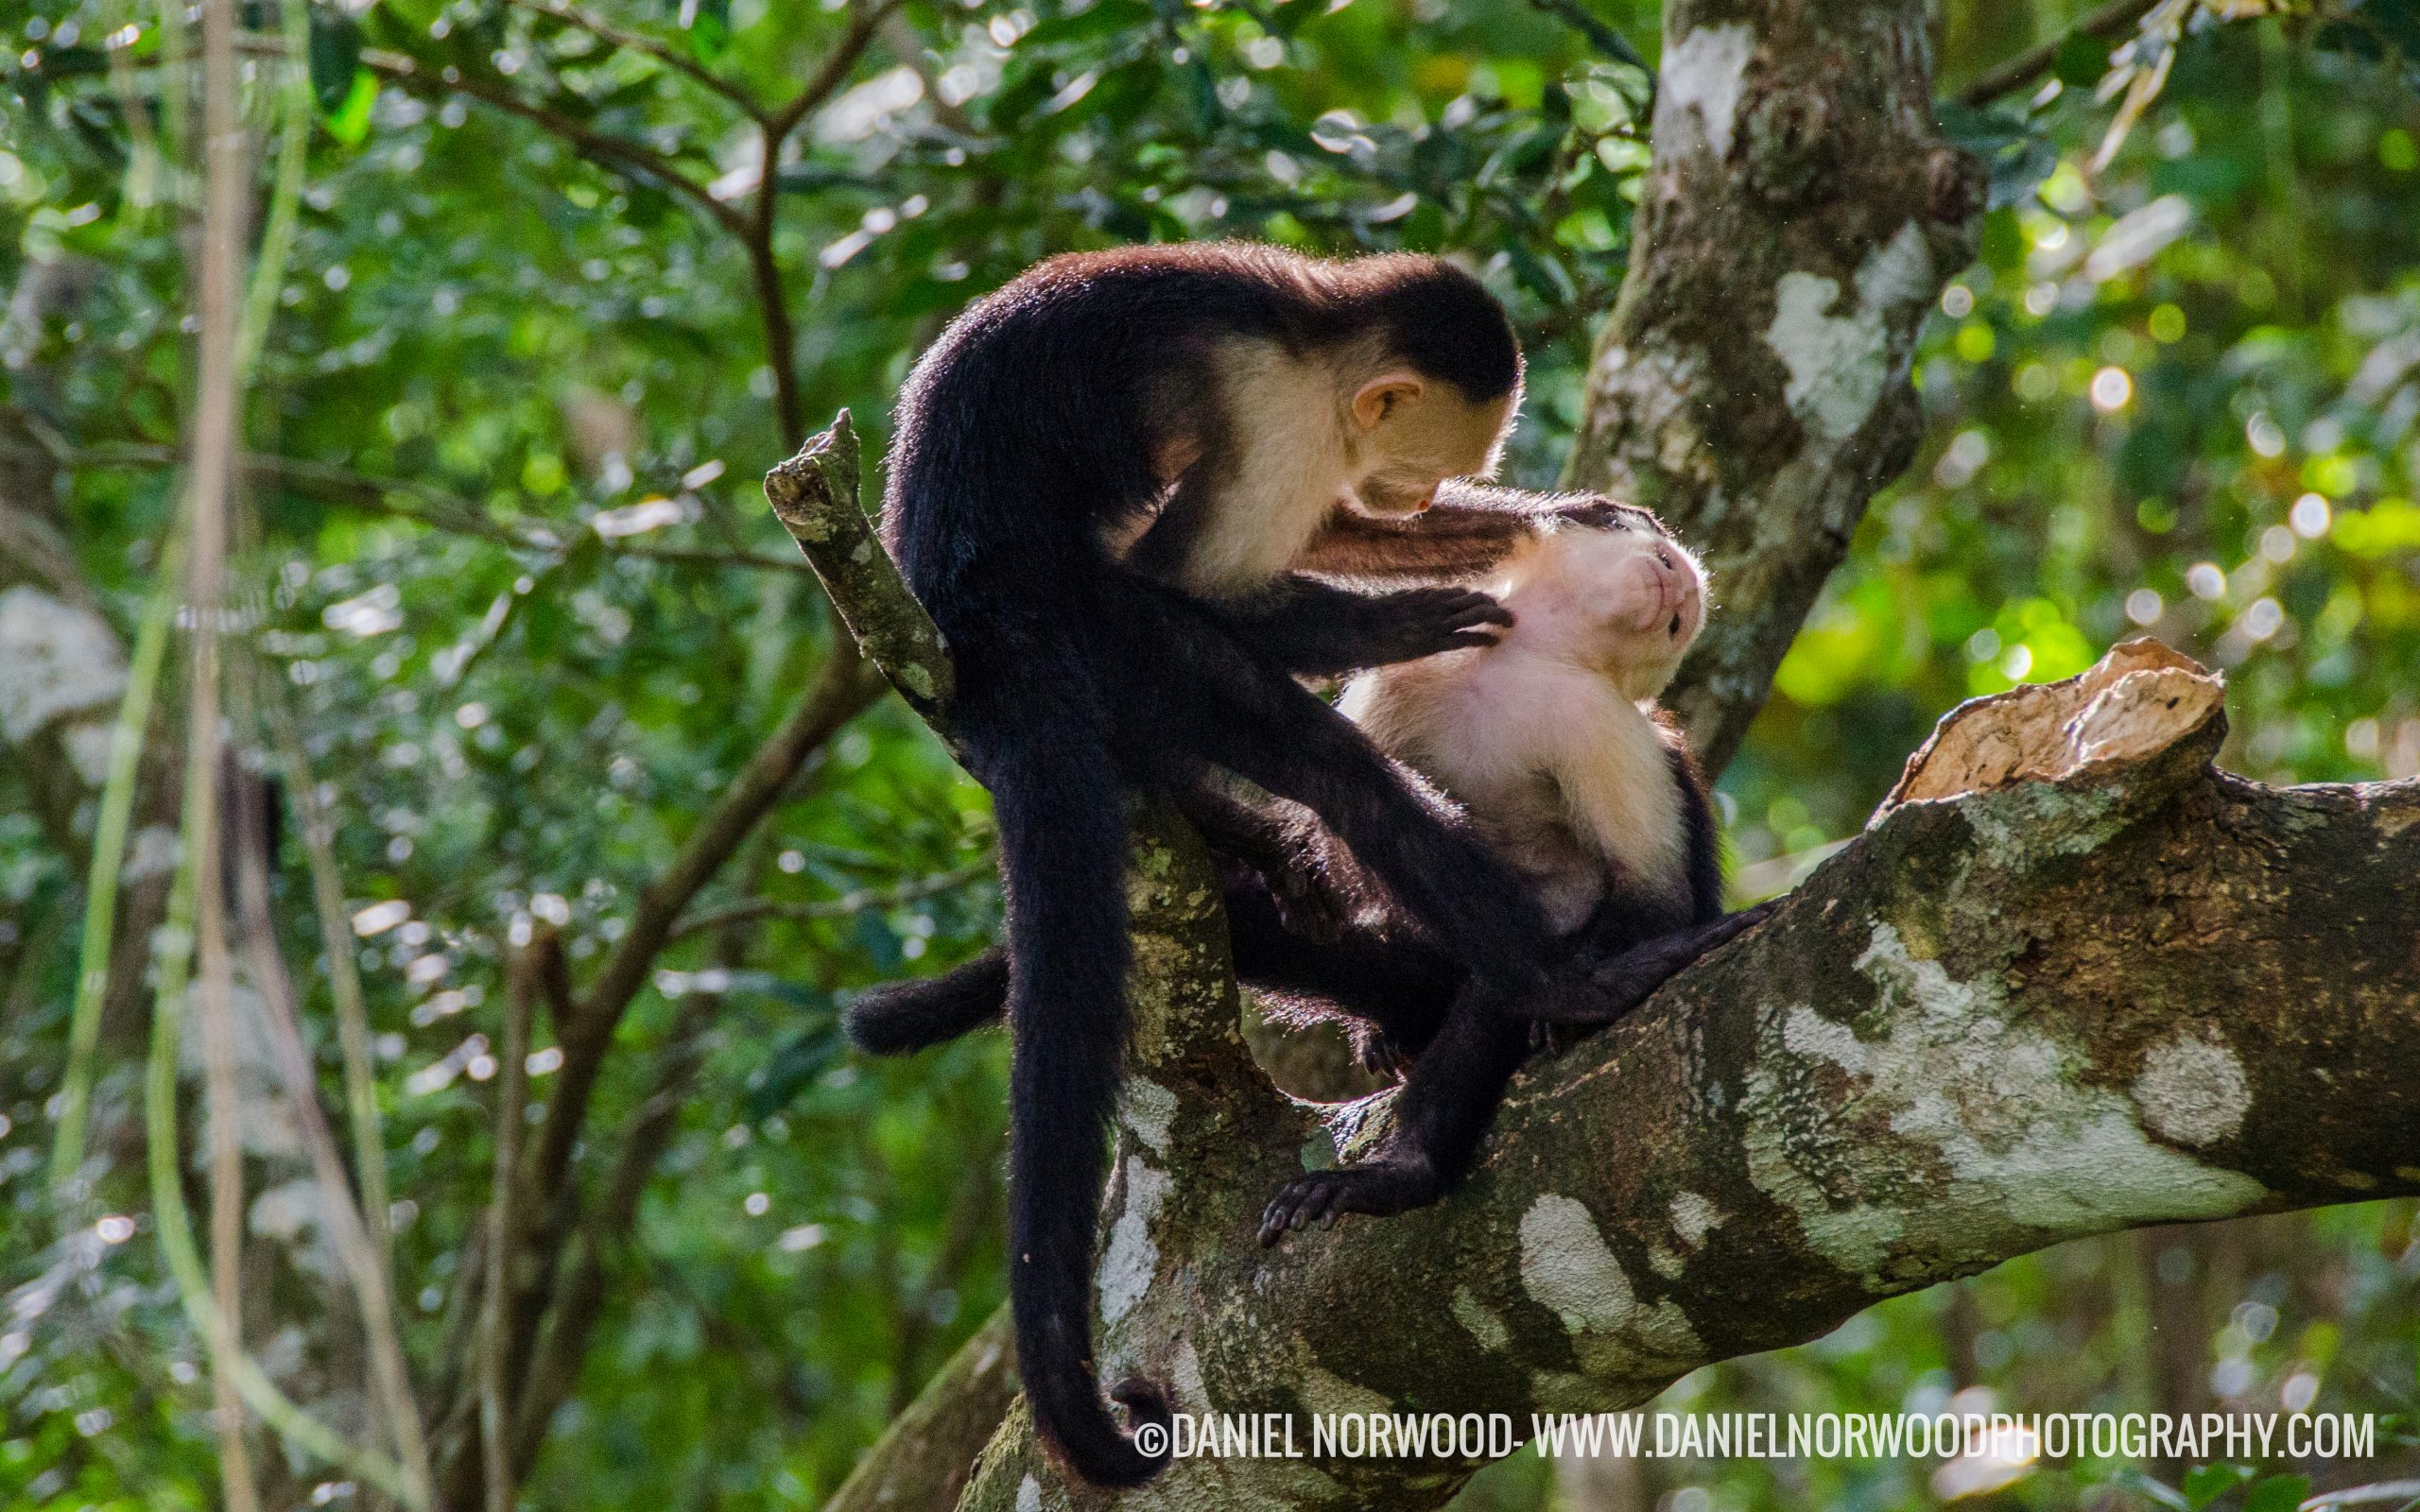 Coiba monkeys